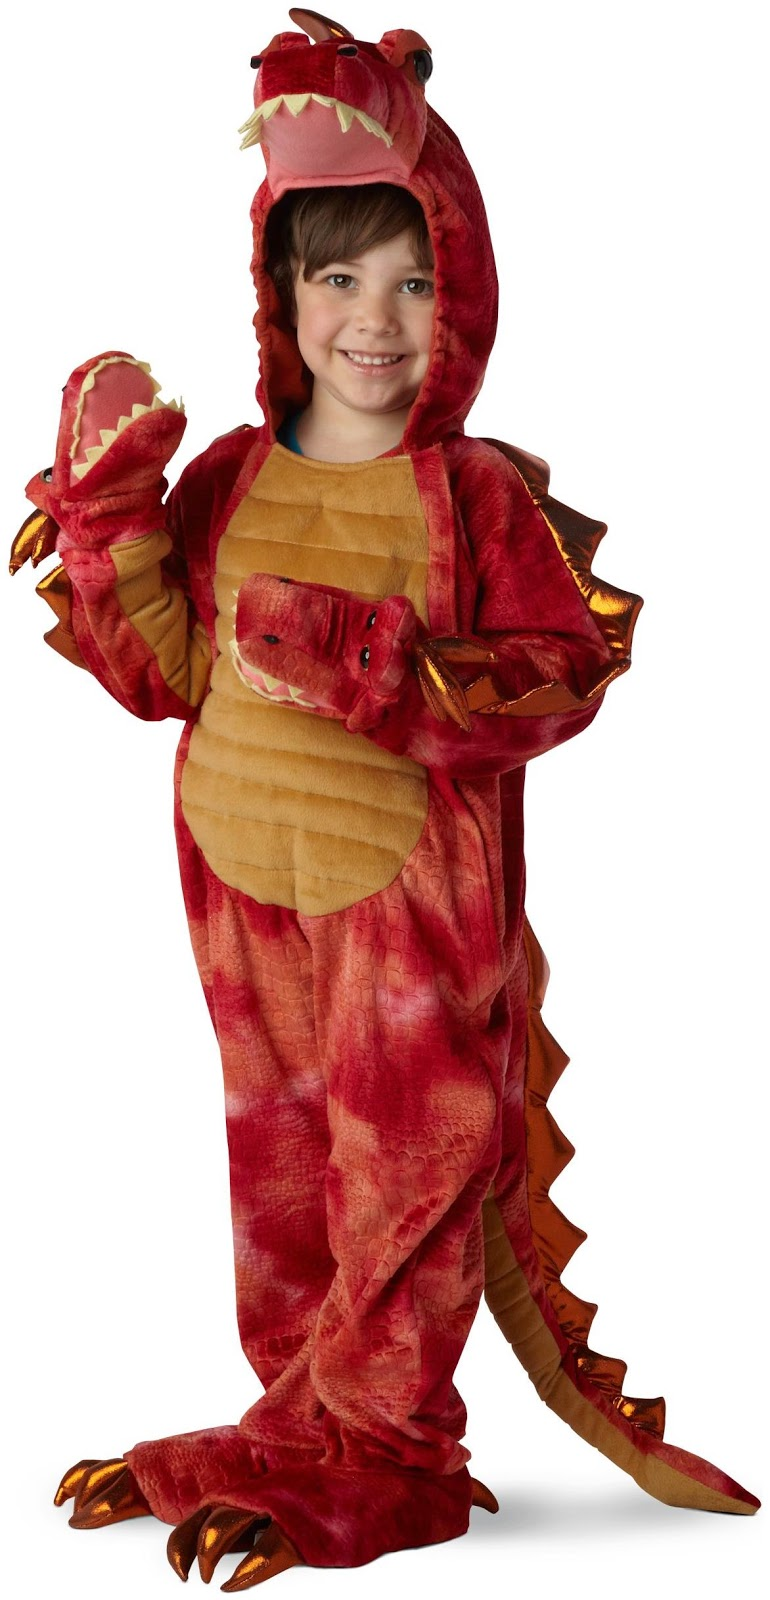 http://www.partybell.com/p-30284-hydra-the-three-headed-dragon-child-costume.aspx?utm_source=Blog&utm_medium=Social&utm_campaign=dragon-theme-party-ideas